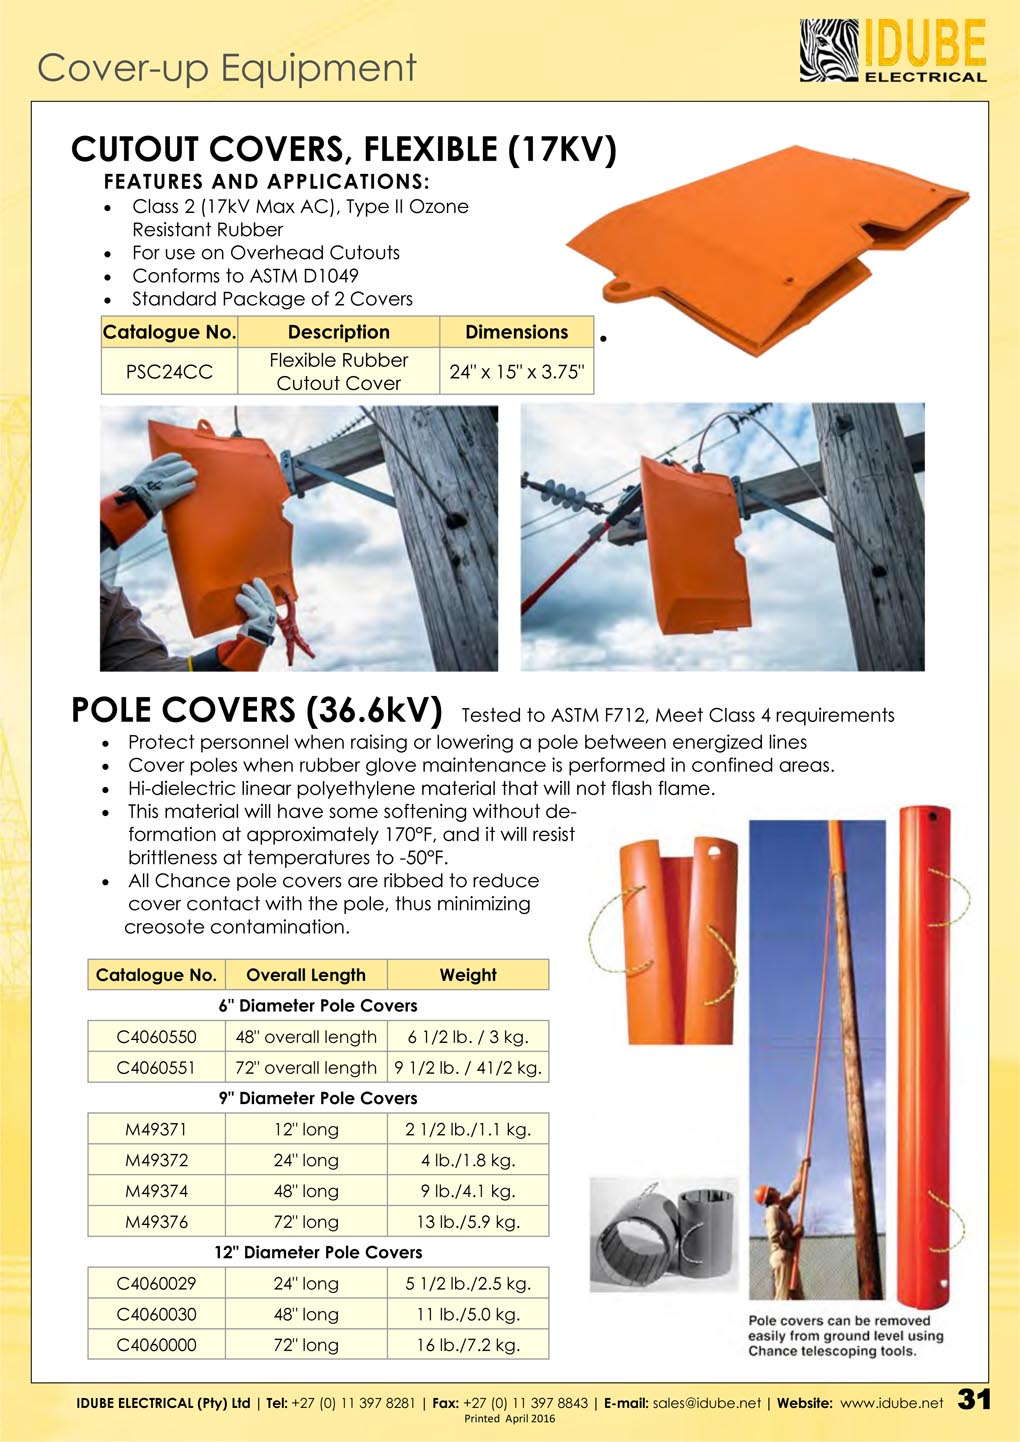 Idube Cutout & Pole Cover - 1020 x 1442